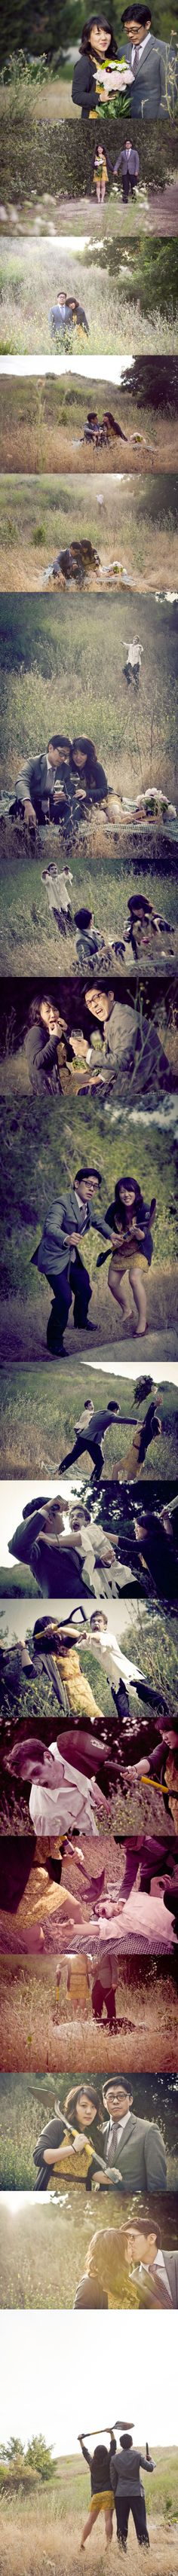 Best engagement photos ever.....so funny!